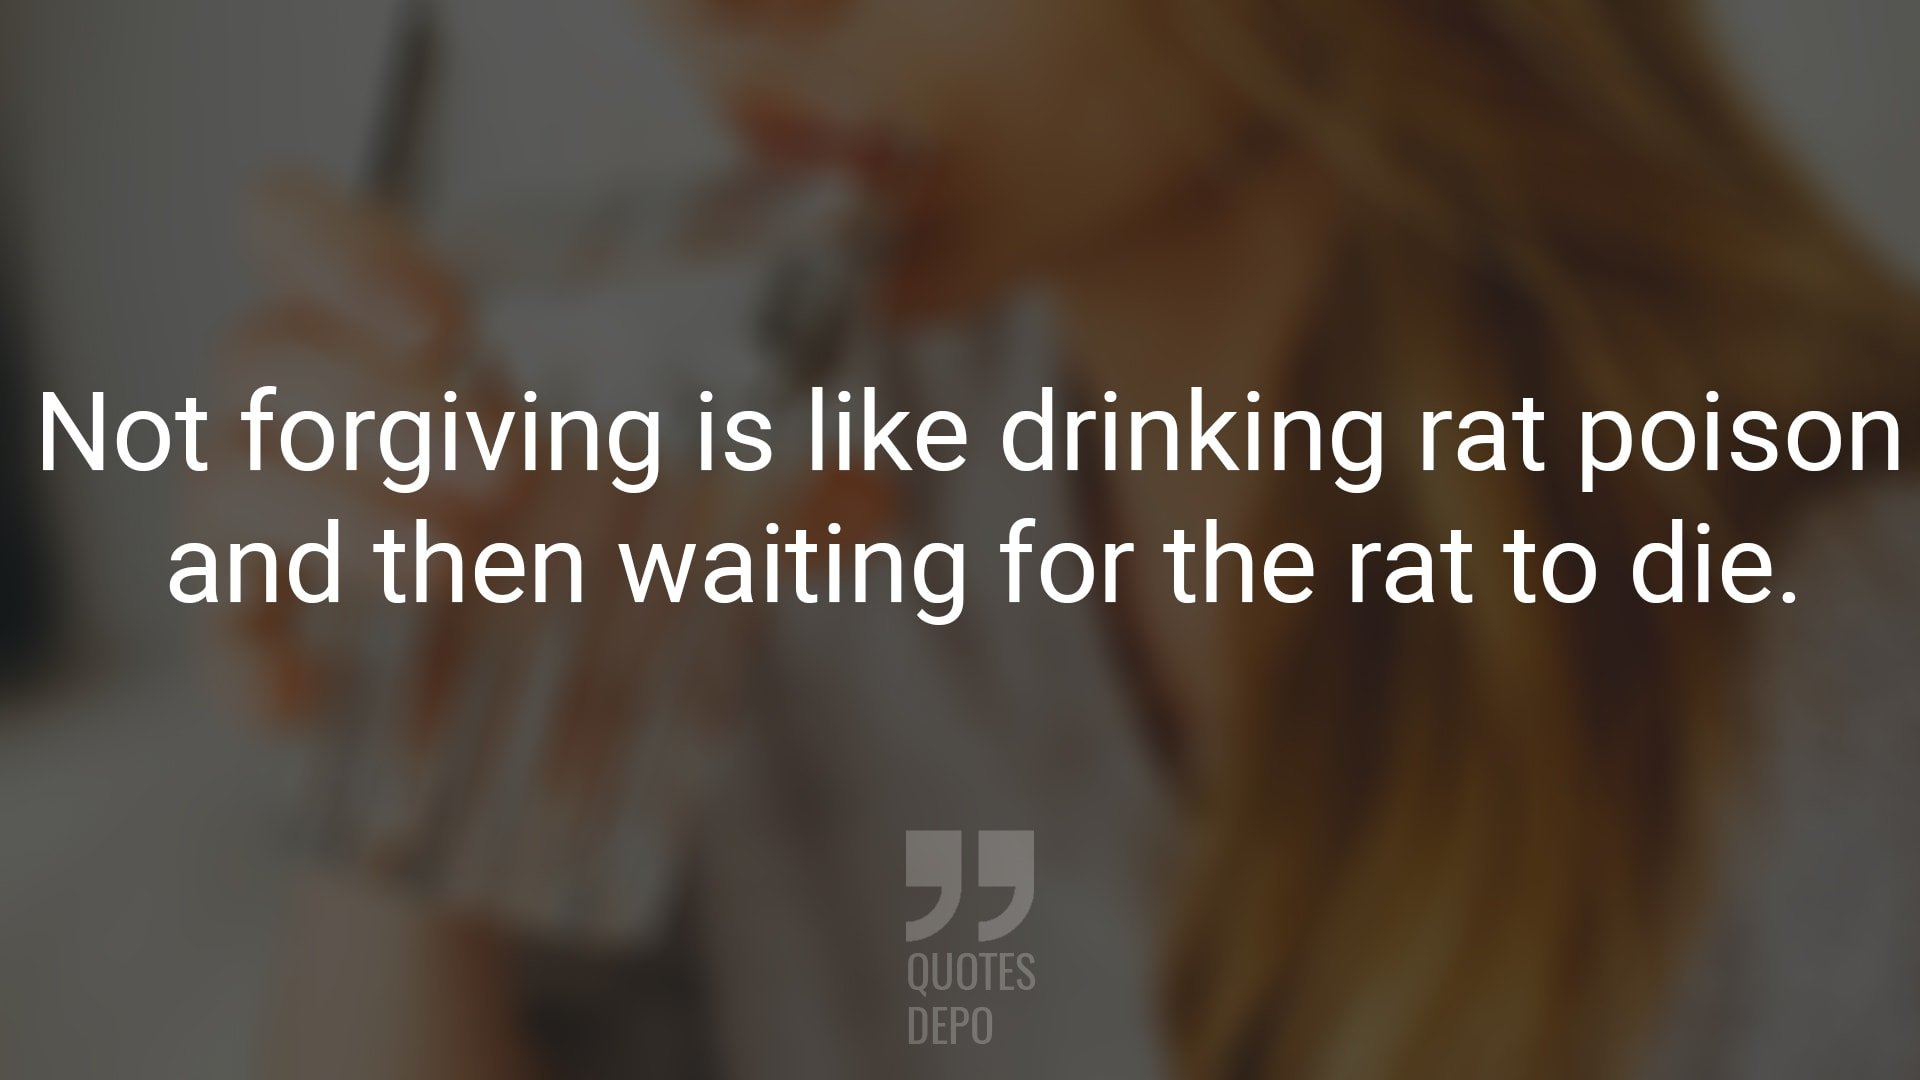 Not Forgiving is Like Drinking Rat Poison